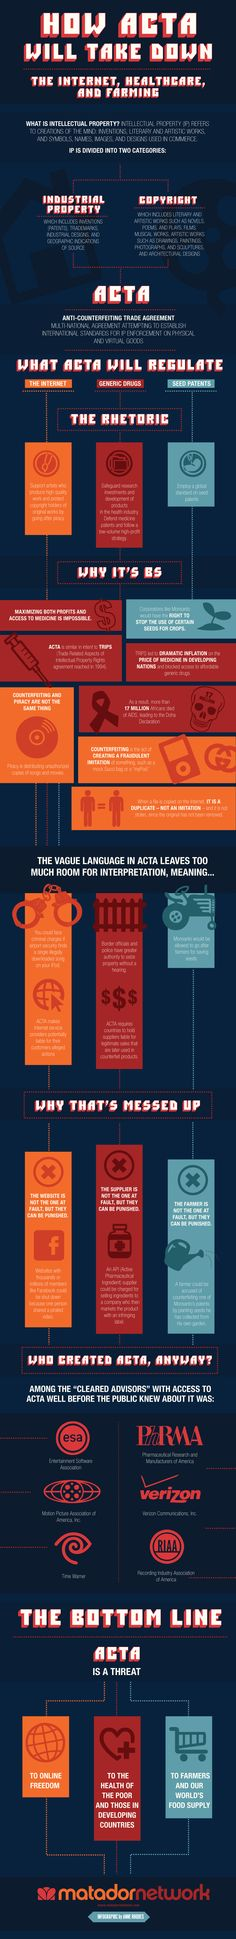 How ACTA will take down the Internet, healthcare, and farming [Infographic]